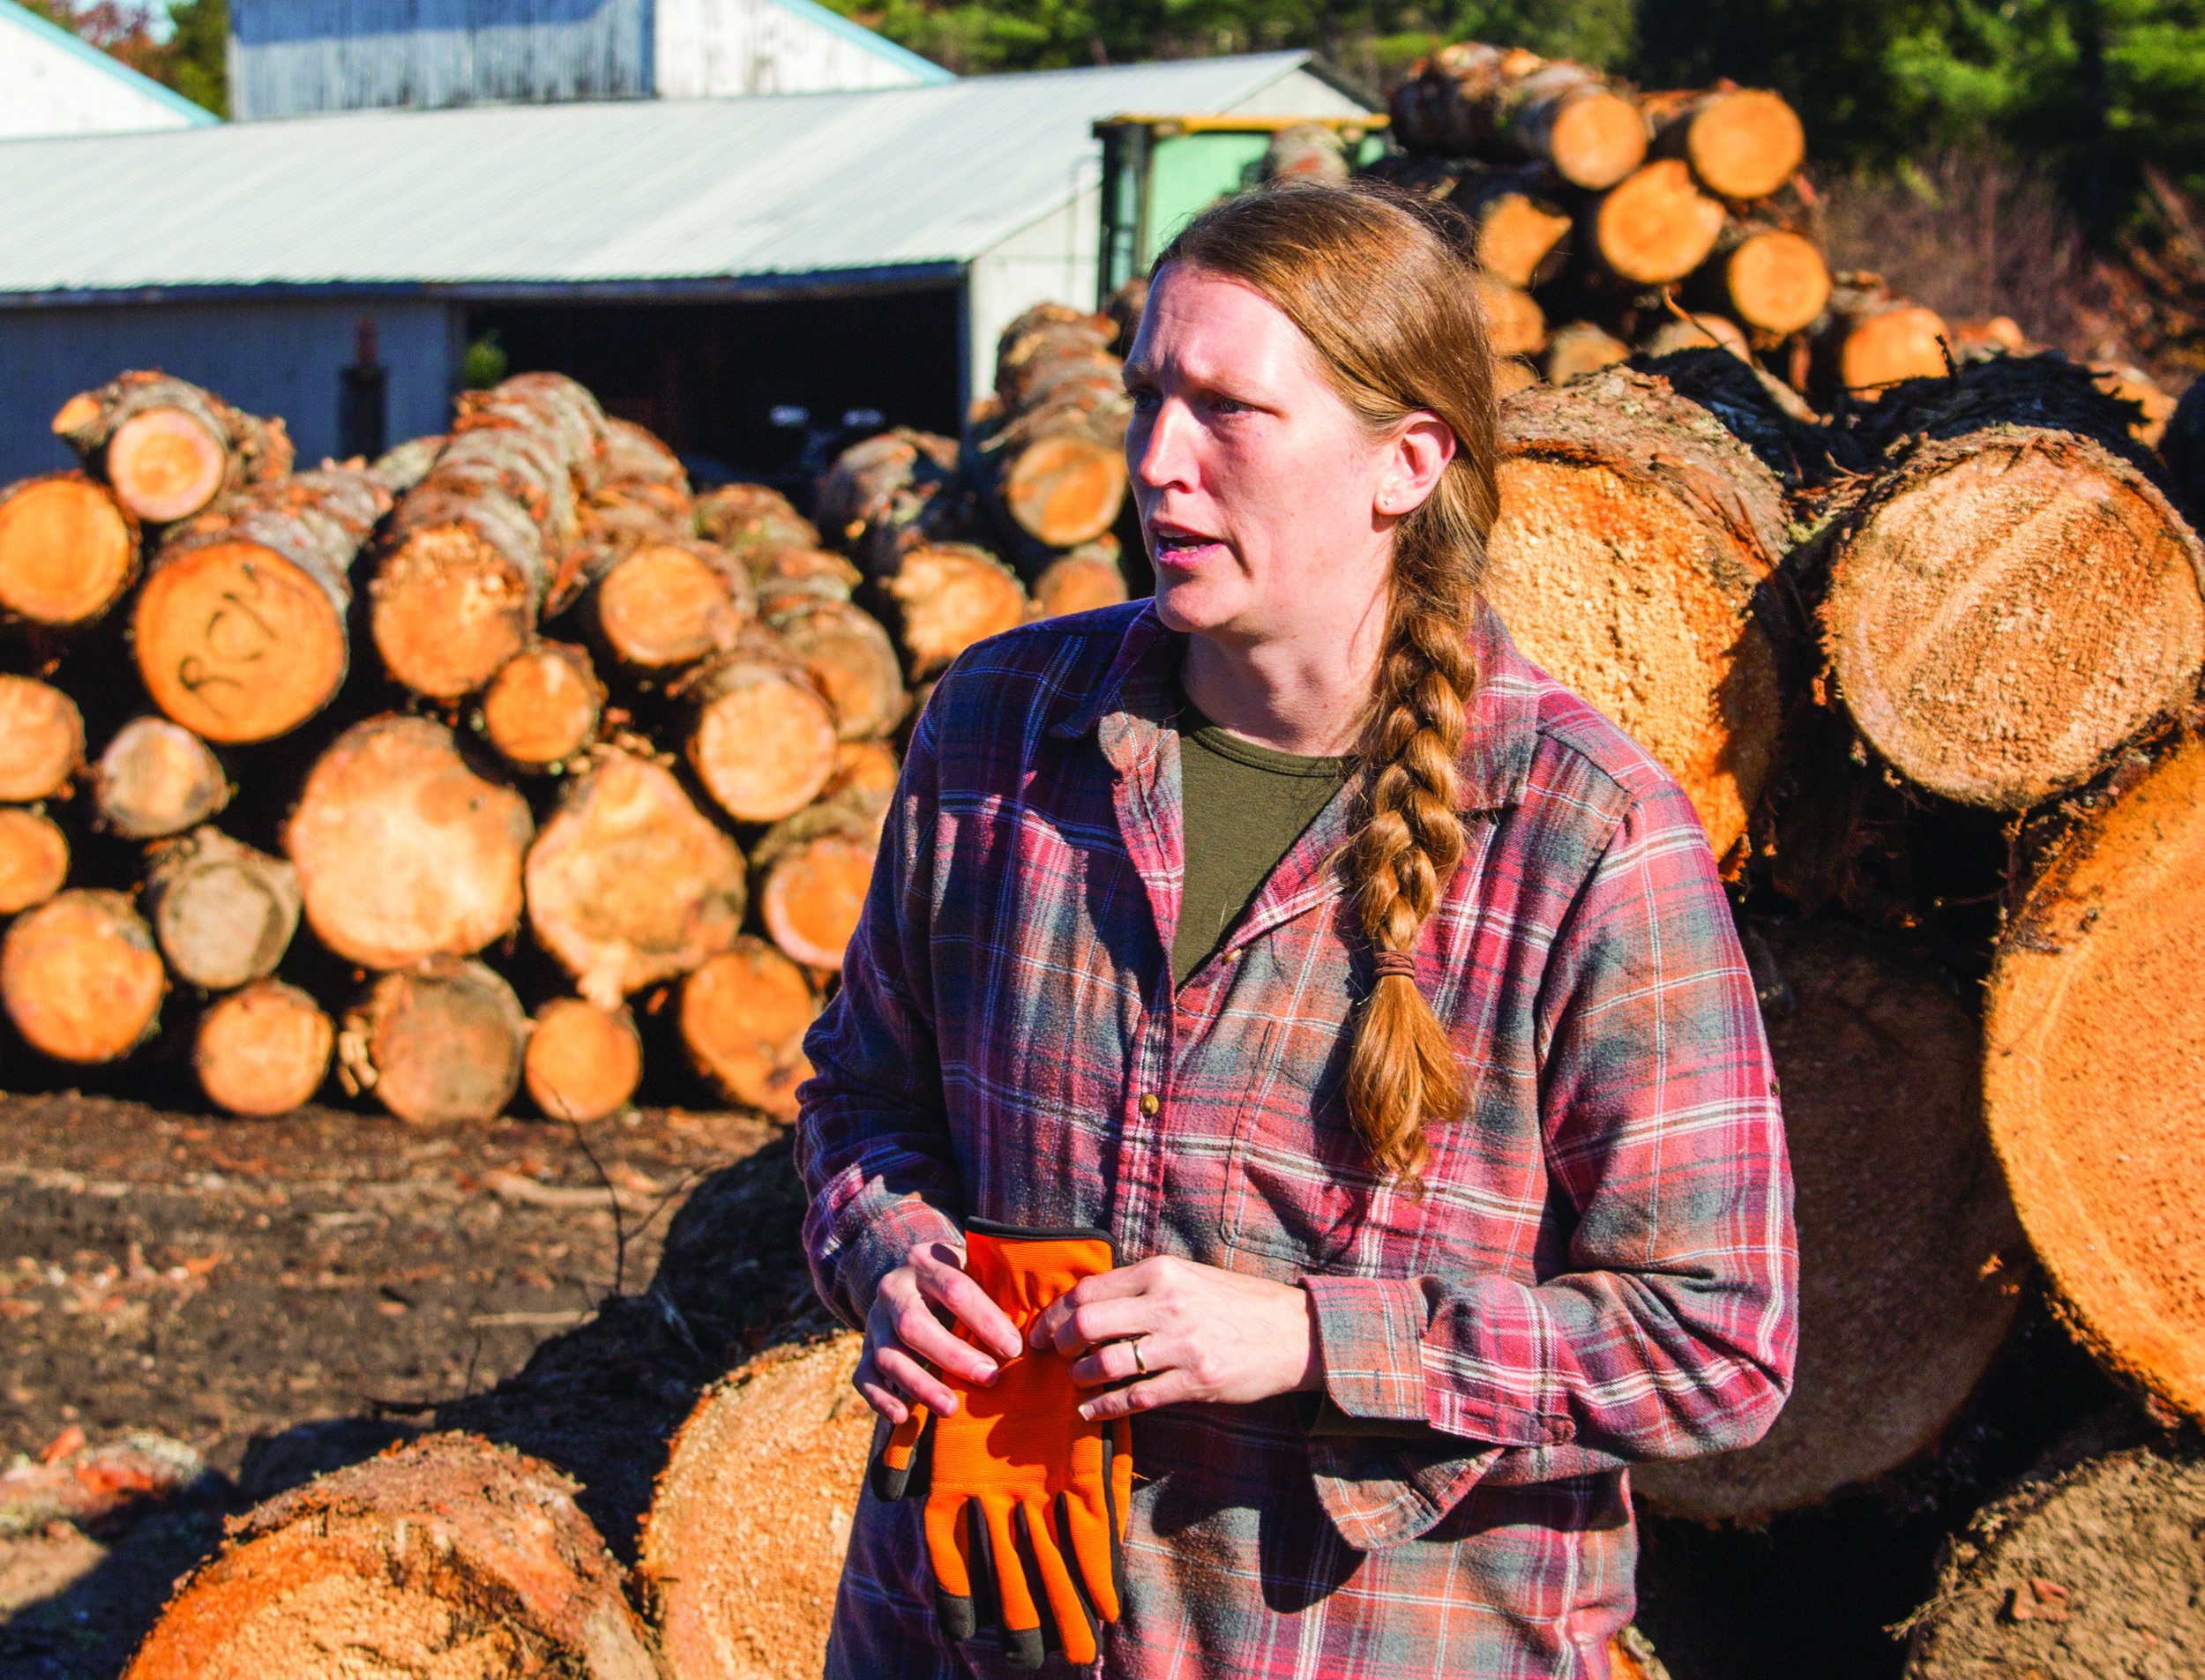 Wendy Patterson of Maschino Lumber, speaks to participants in a recent tour. Maschino Lumber is a fourth-generation, family-owned mill that sells hemlock, white pine and spruce for dimensional lumber, boards and siding in New Gloucester.  Photo: Phoebe Parker